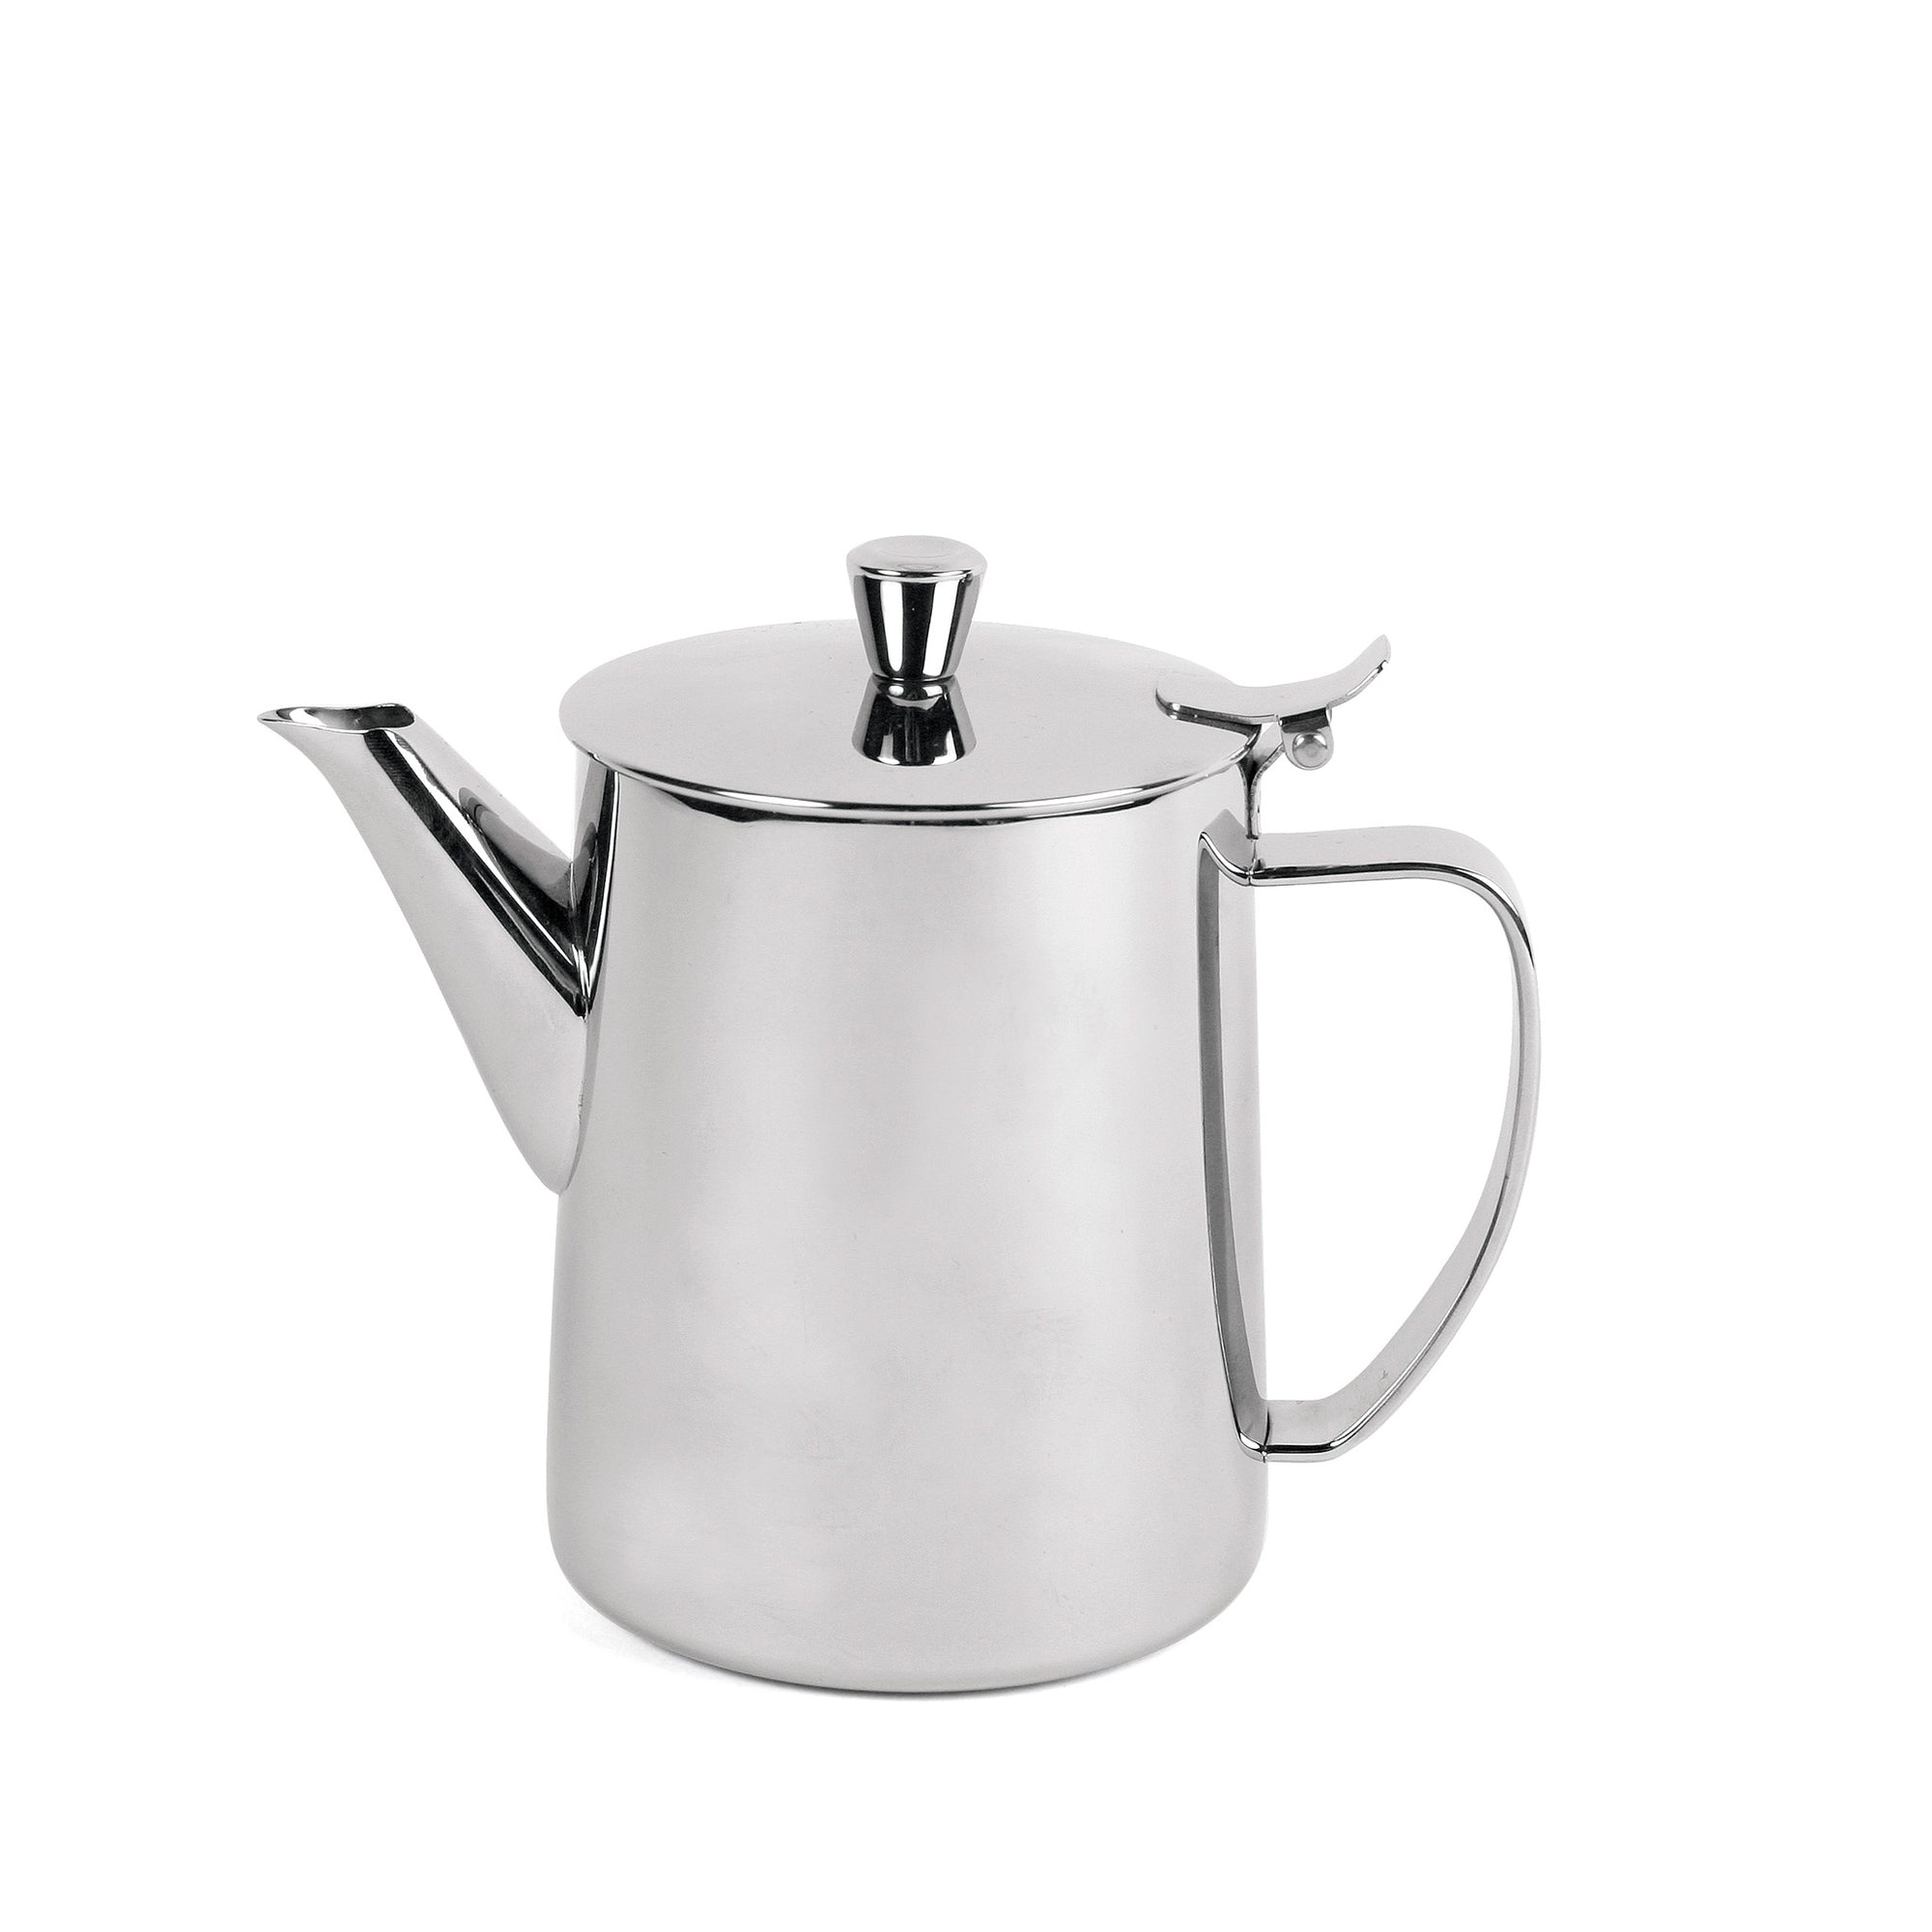 Classic Stainless Coffee Server 0,6L - Merx - Espresso Gear